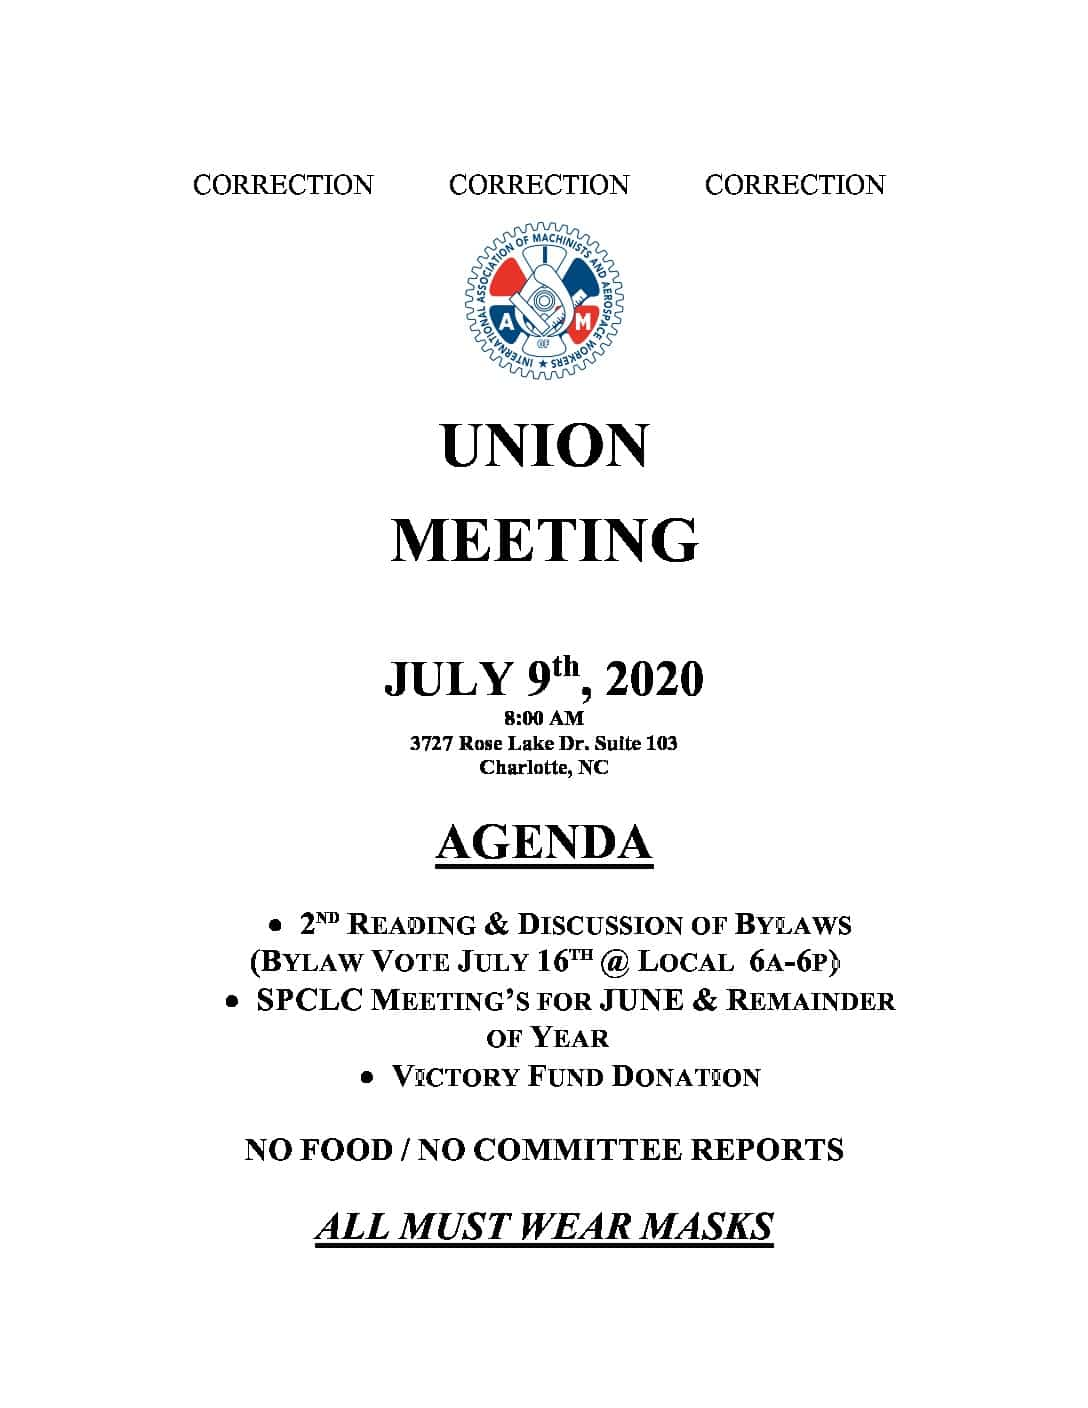 thumbnail of Agenda Jul20 Correction